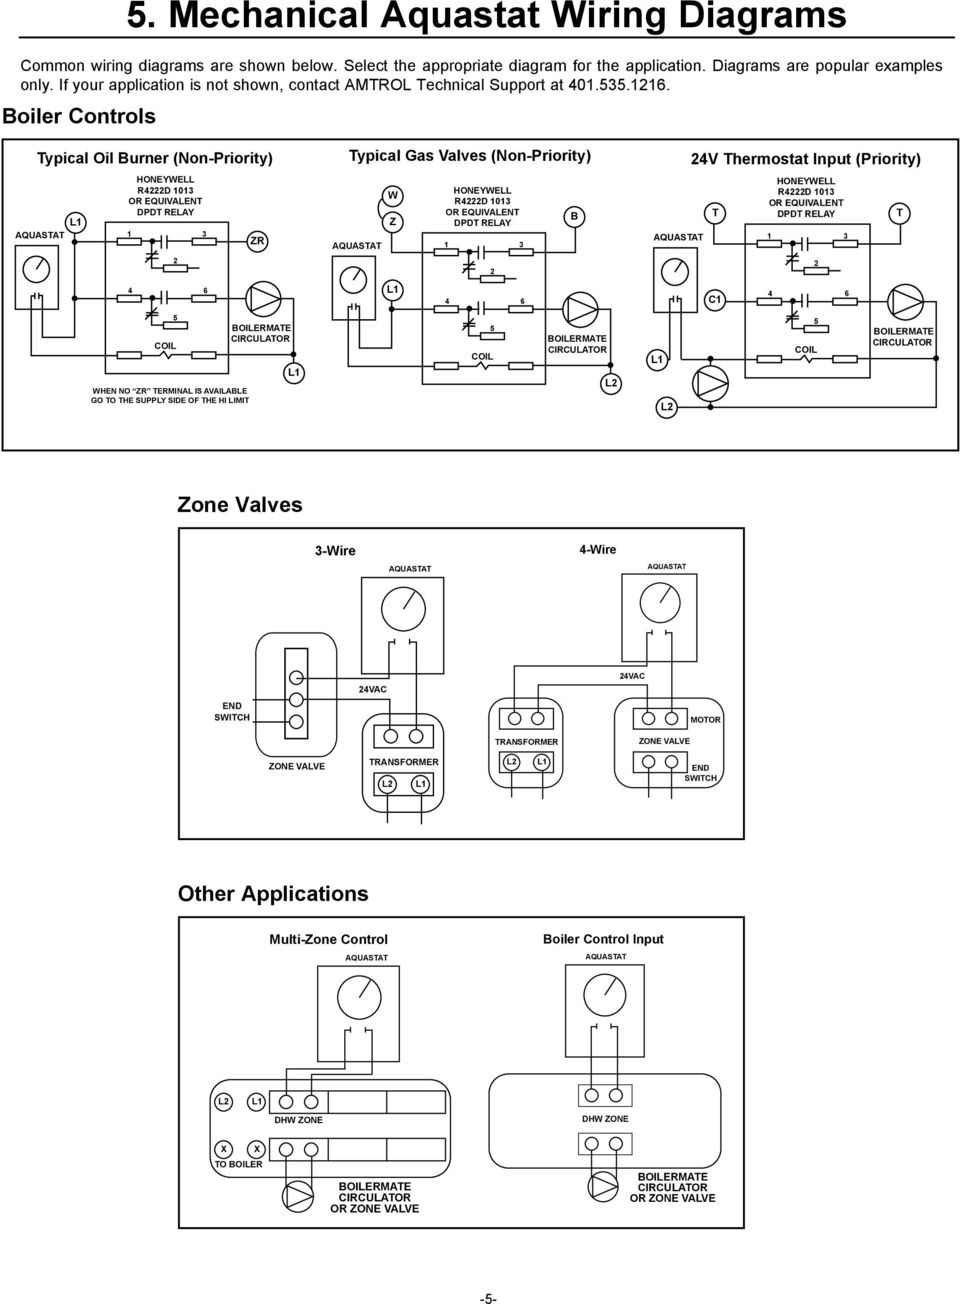 Boilermate Indirect Fired Water Heaters Pdf 24v Thermostat Wiring Diagram Boiler Controls Typical Oil Burner Non Priority Honeywell R4222d 1013 Or Equivalent Dpdt